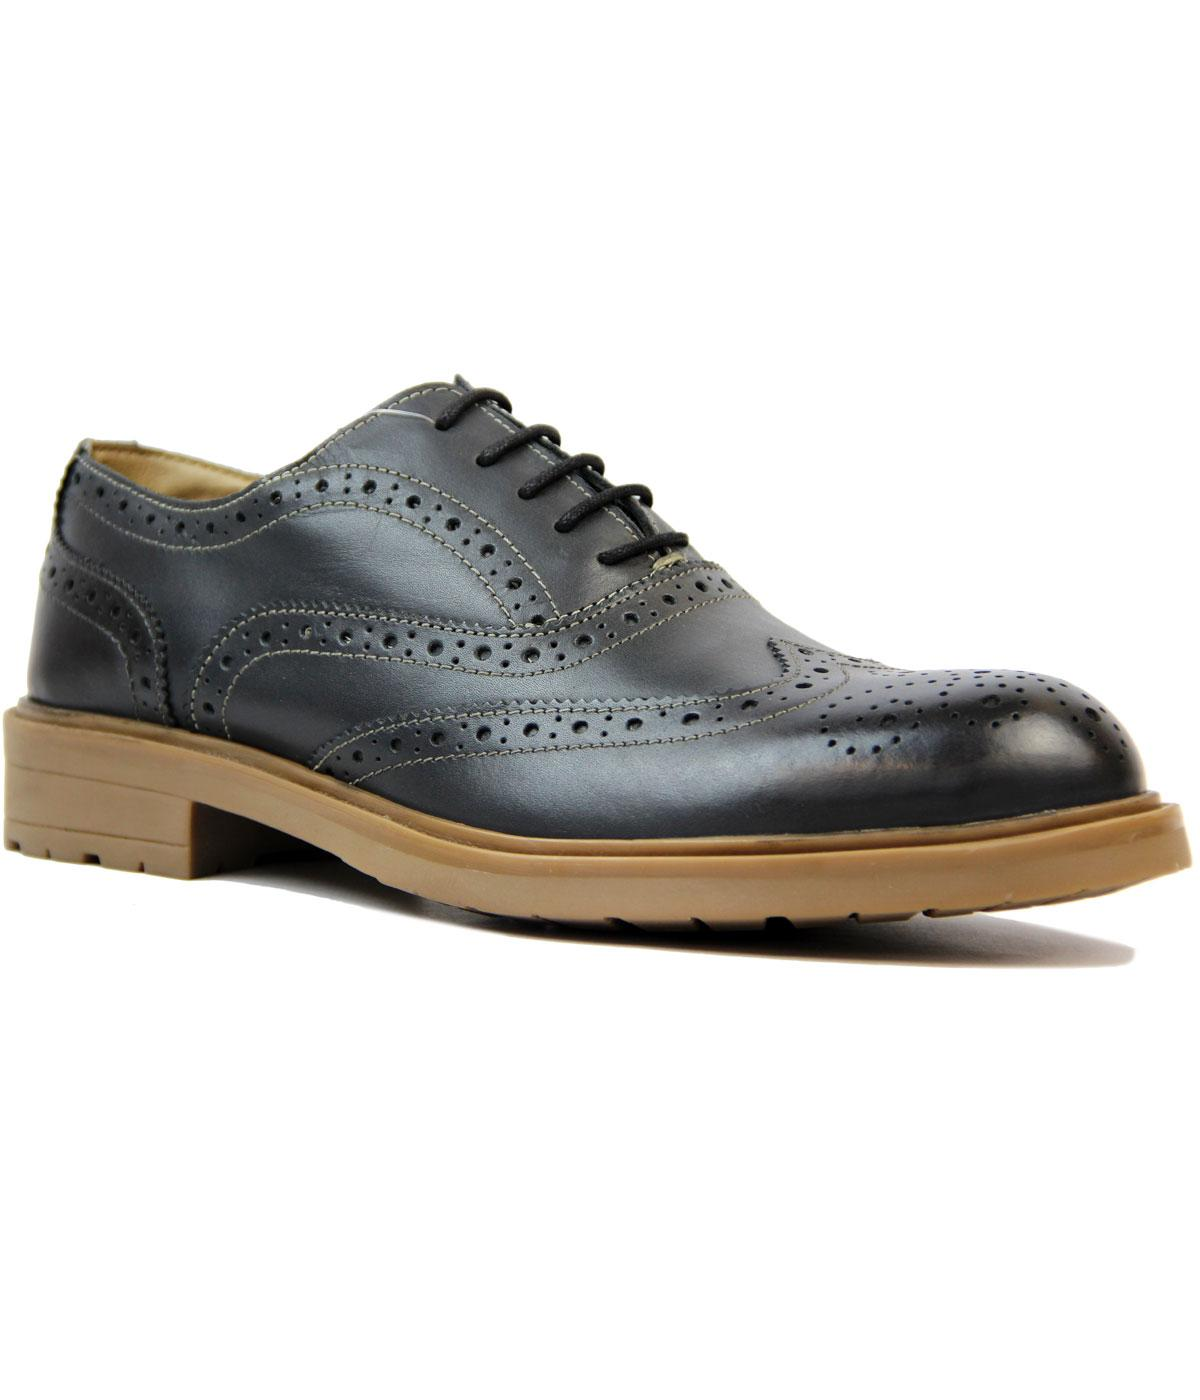 Jack LAMBRETTA Retro Mod Gibson Brogue Shoes GREY